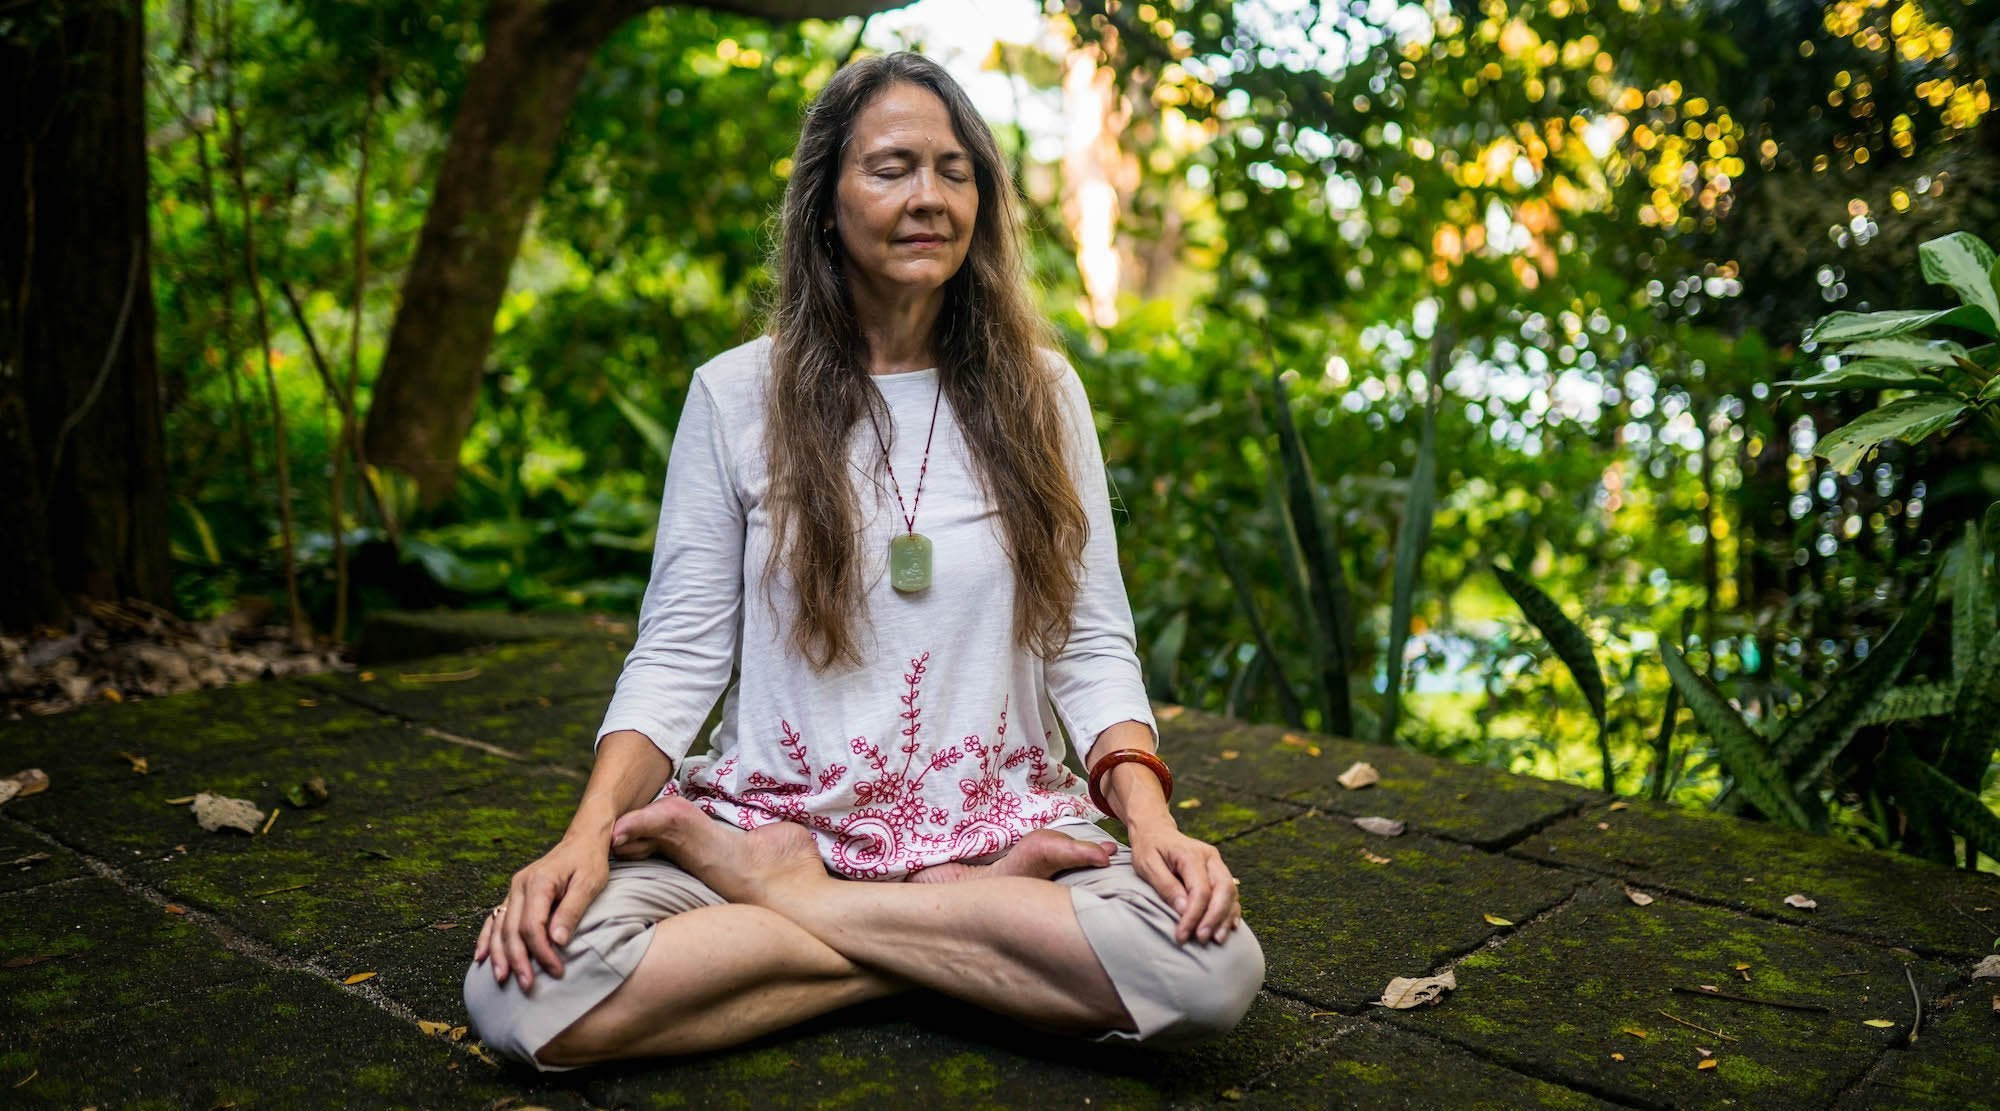 Chocolate, Meditation + Caretaking as a Path to Enlightenment